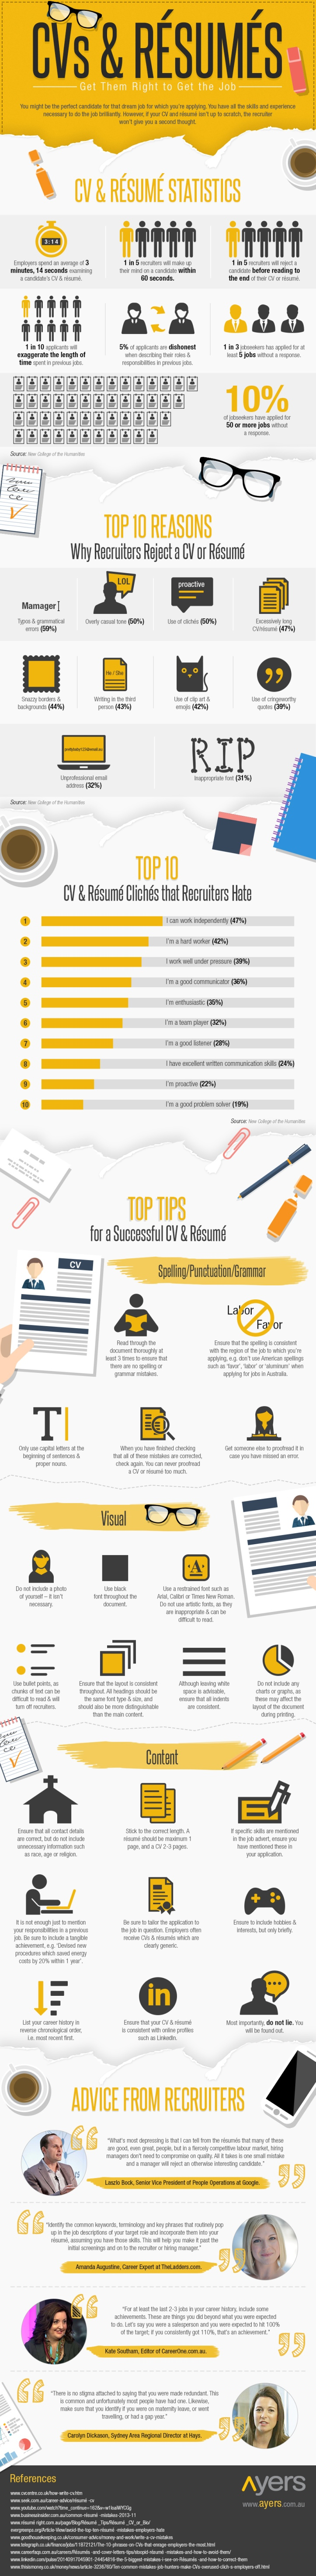 CVs & Résumés: Get Them Right to Get the Job – #Infographic